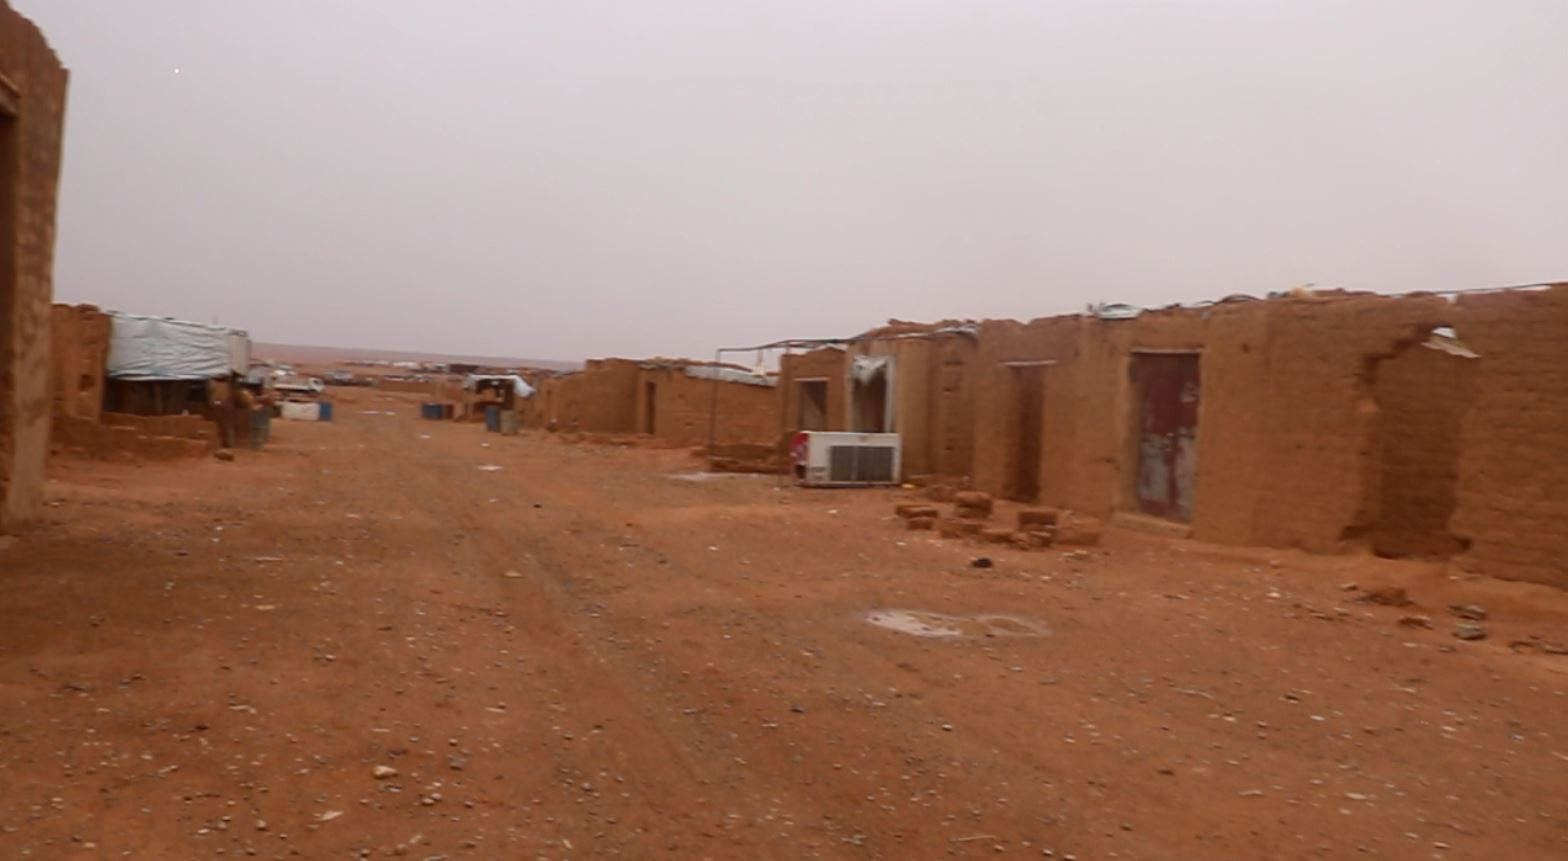 An image of Rukban Camp on the Syria-Jordan border. (Supplied: Mouaz Moustafa)